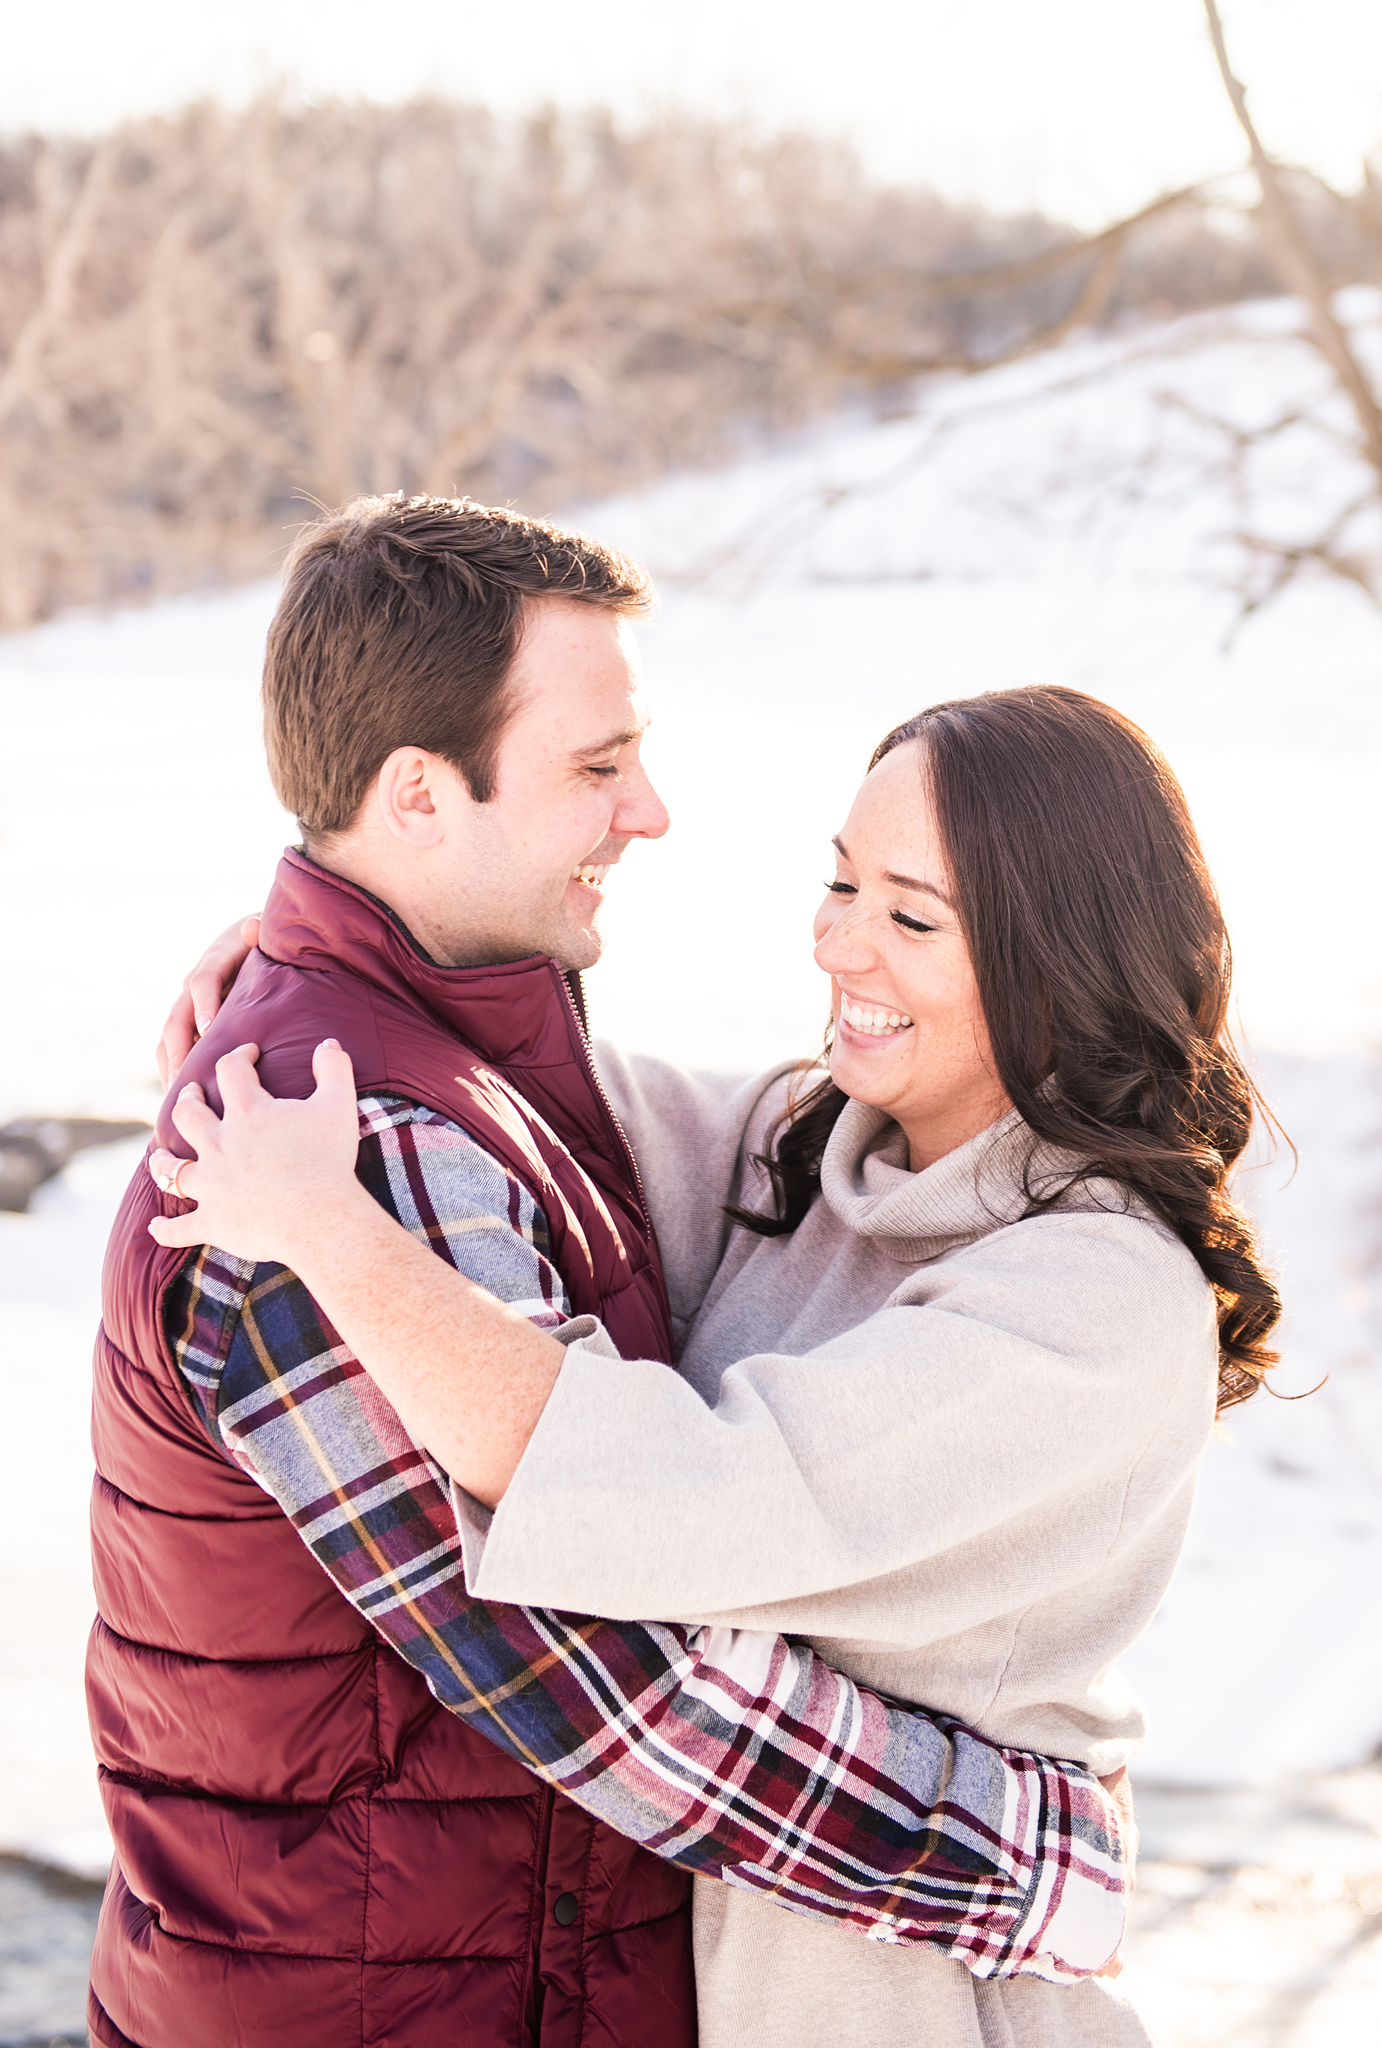 Fallbrook_Central_NY_Engagement_Session_JILL_STUDIO_Rochester_NY_Photographer_DSC_4710.jpg